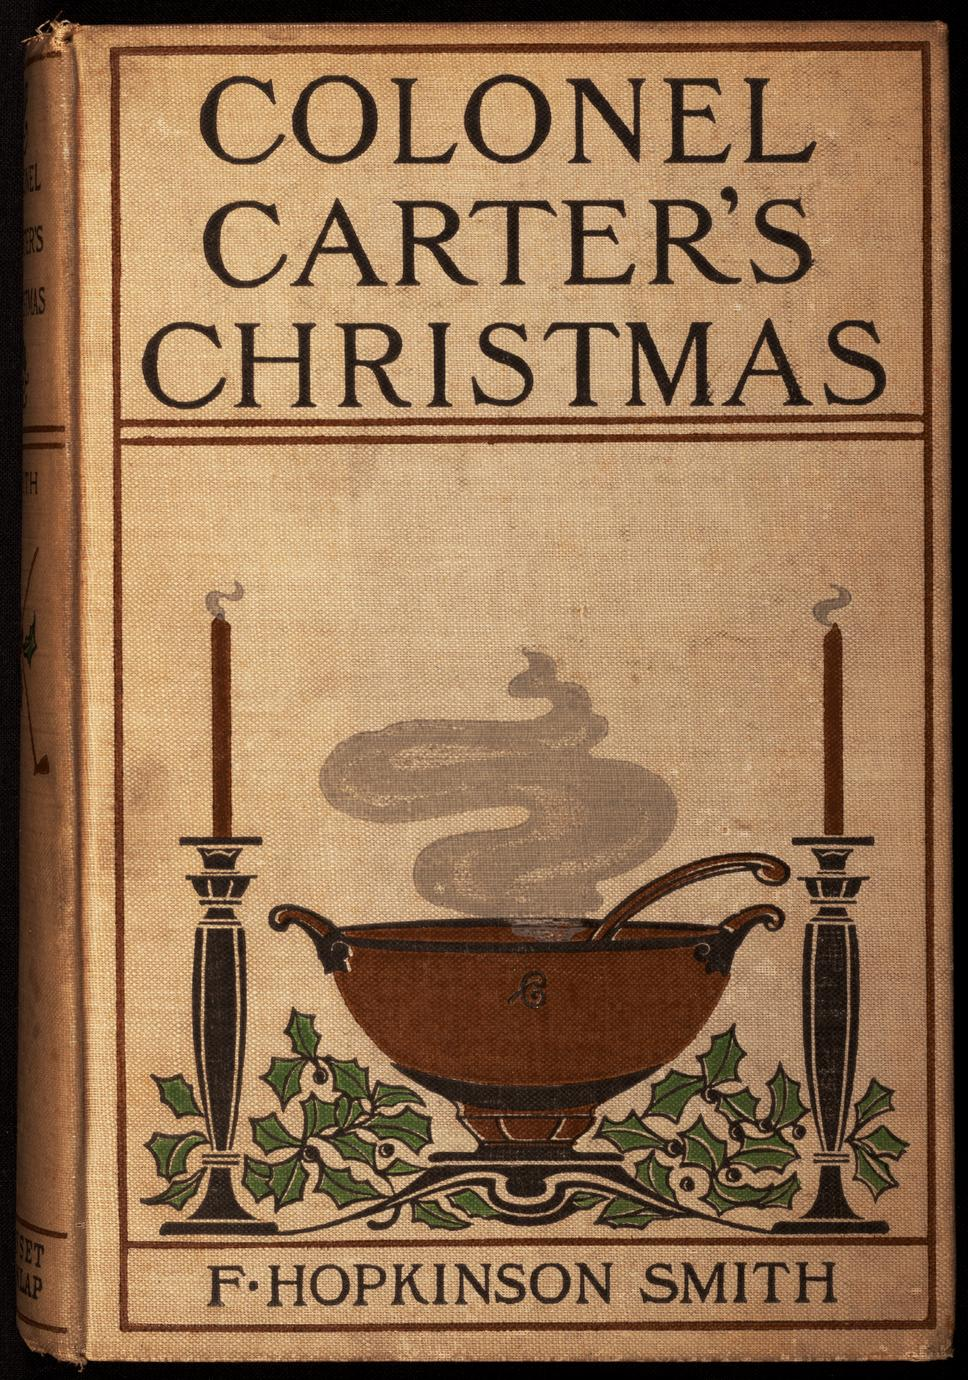 Colonel Carter's Christmas (1 of 2)